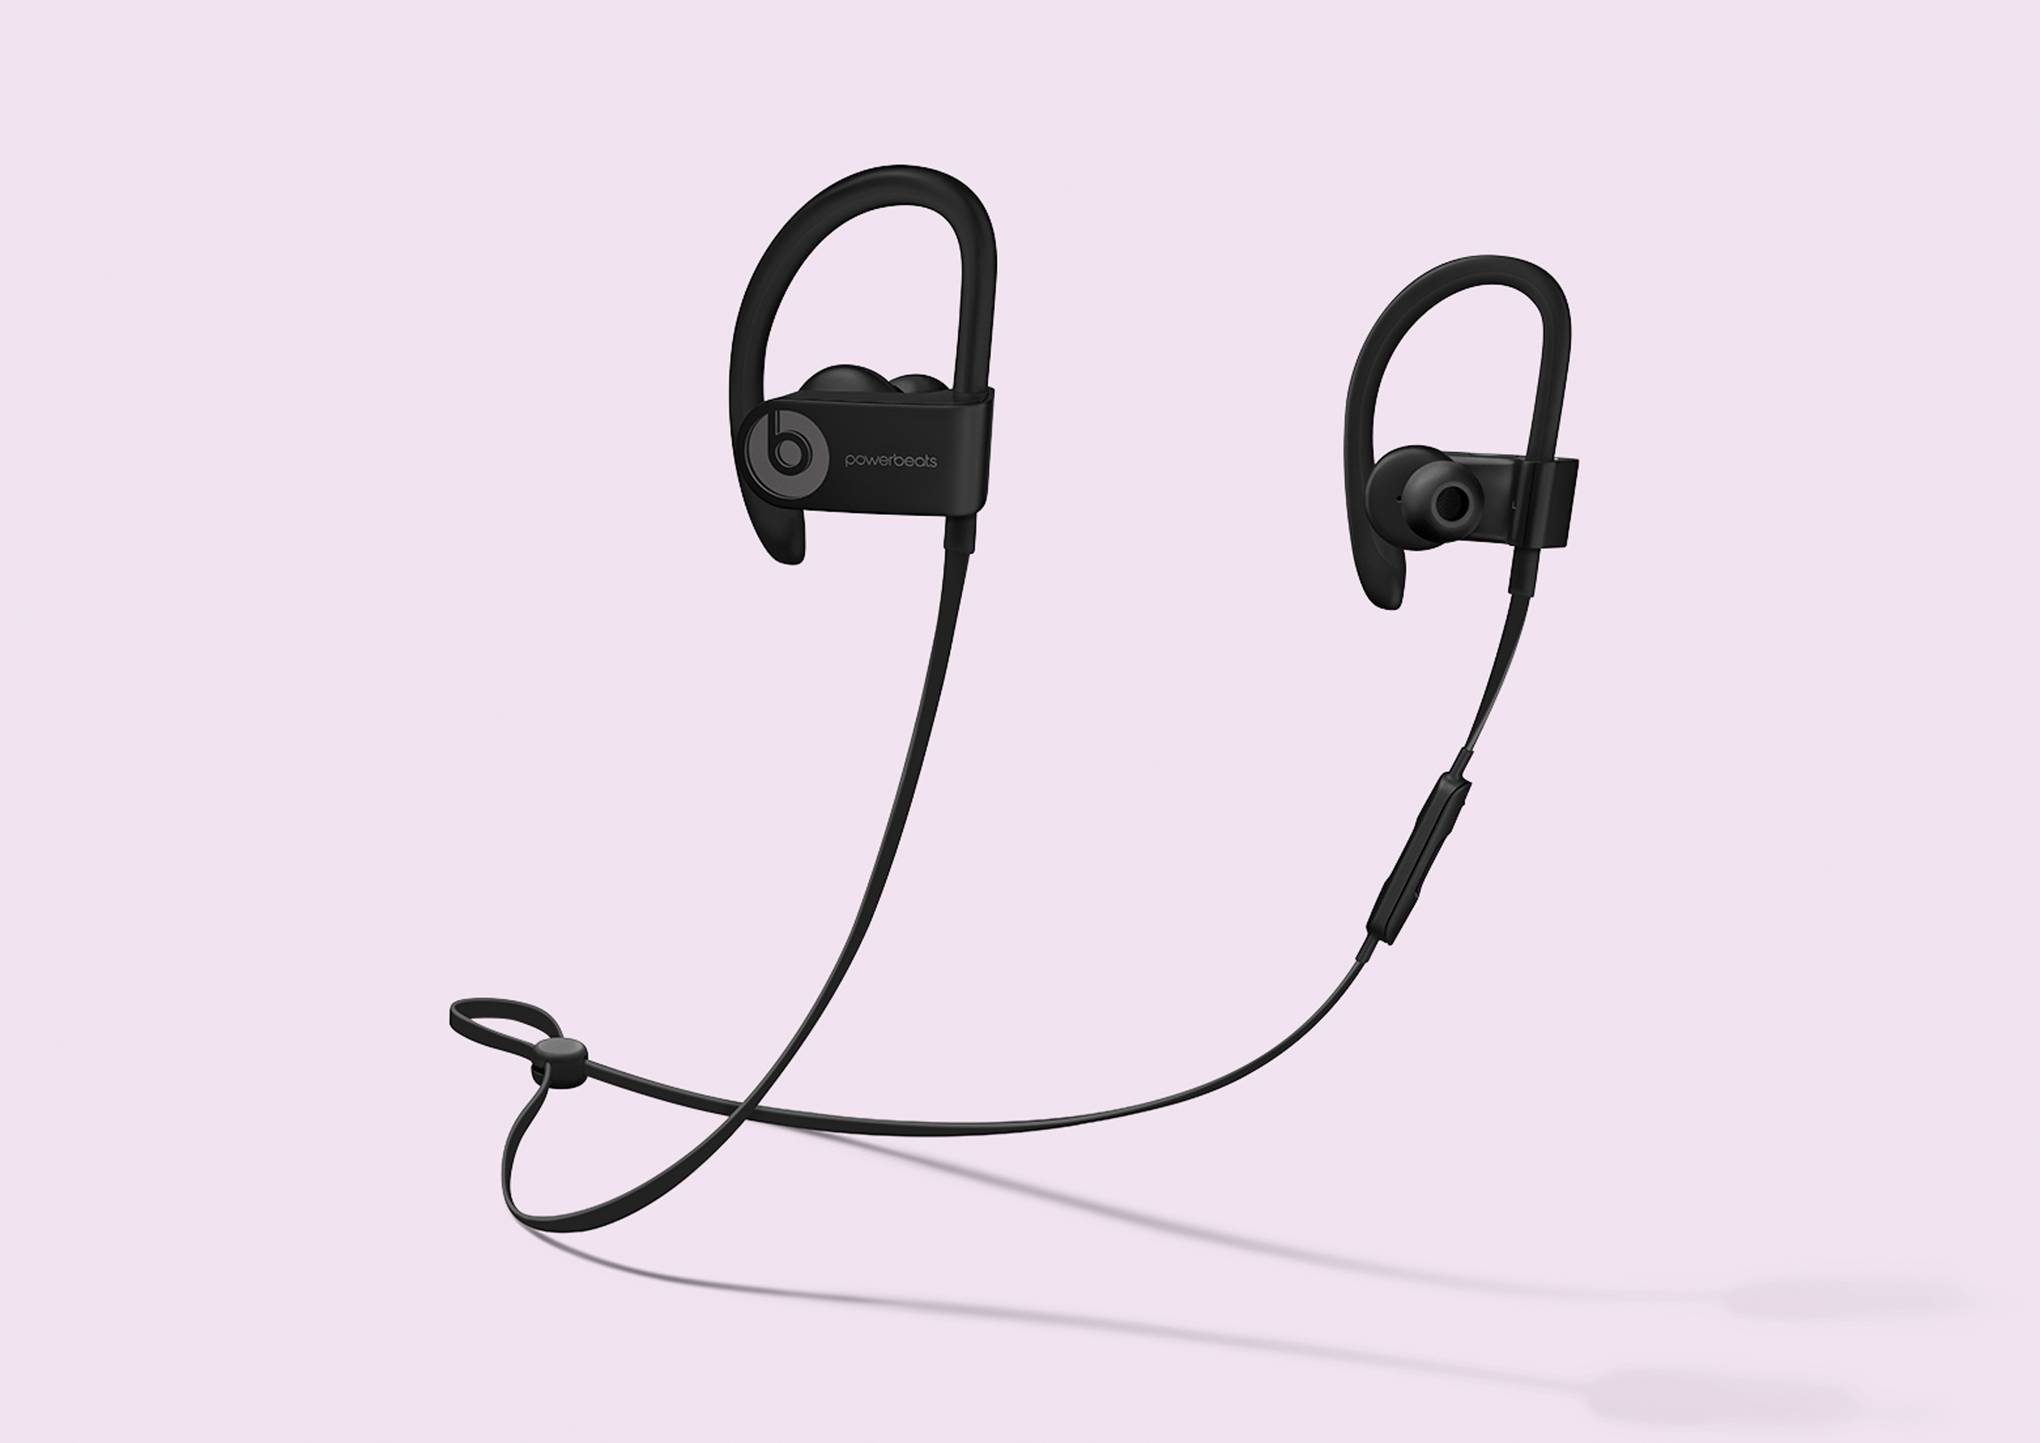 f66c702437c The best headphones for running and the gym in 2019 | WIRED UK